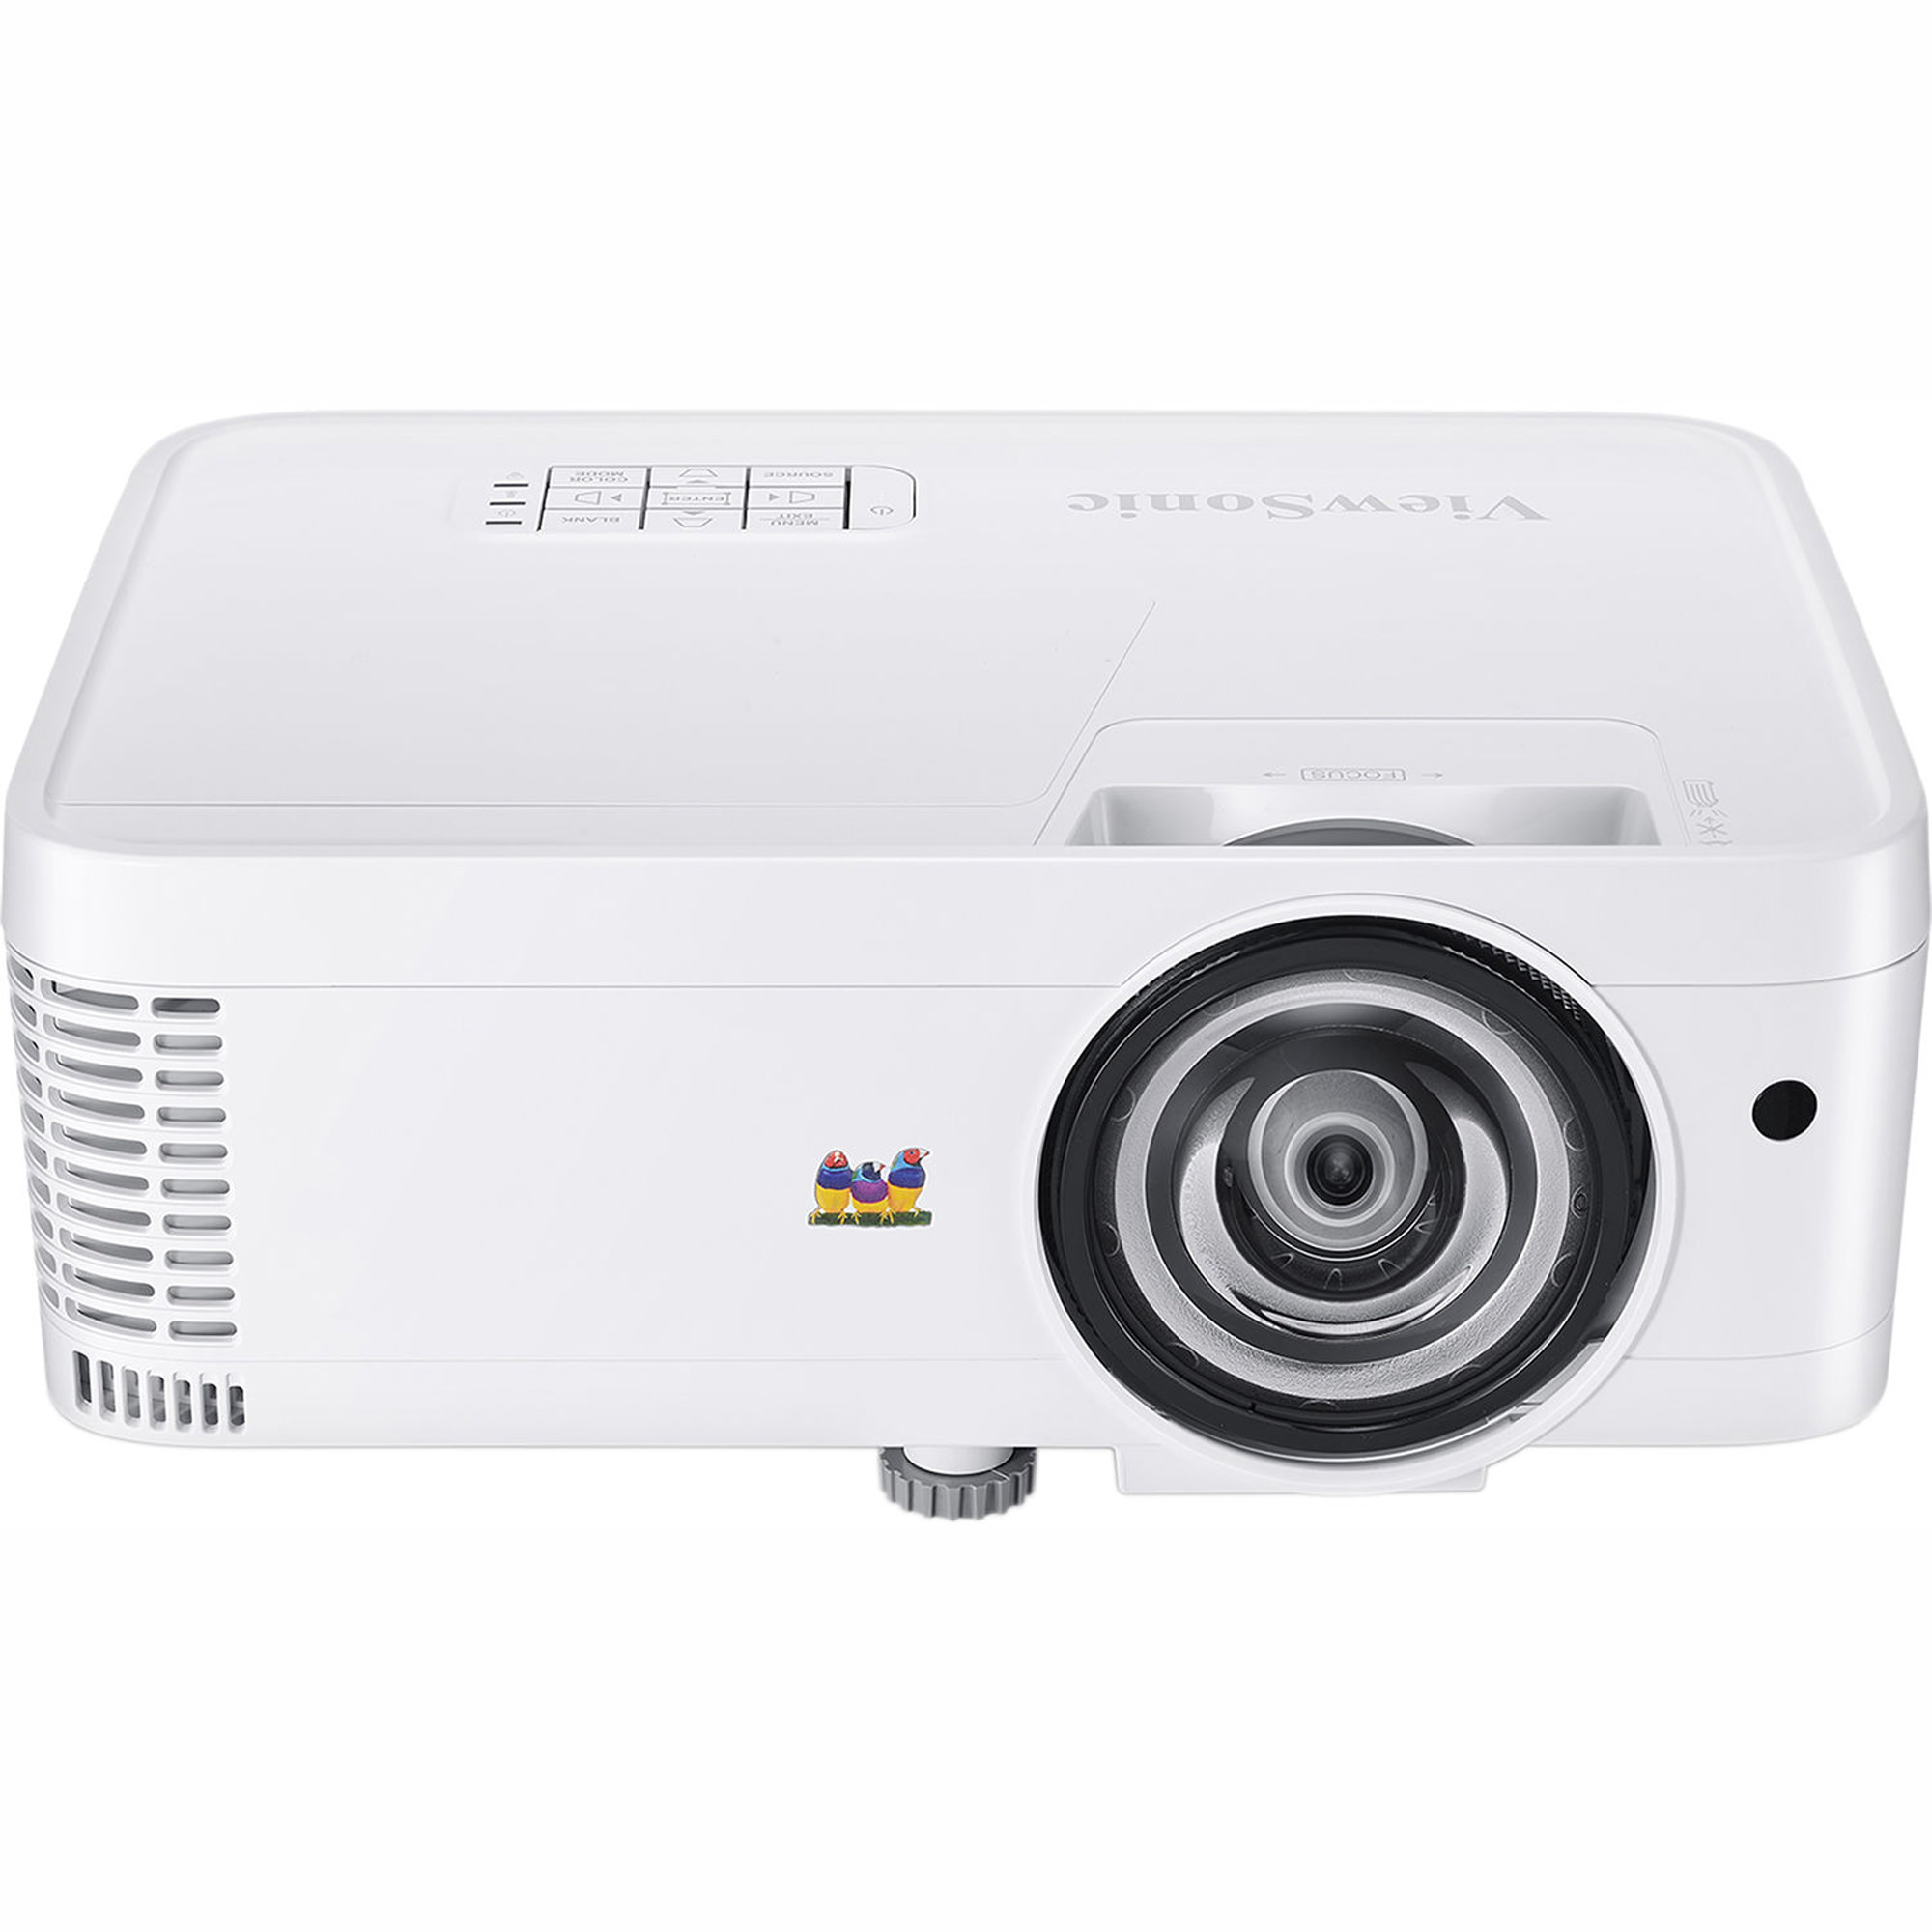 ViewSonic PS600W WXGA Short Throw DLP Projector for Business and Education, 3,500 lumens, native WXGA 1280x800... by Viewsonic